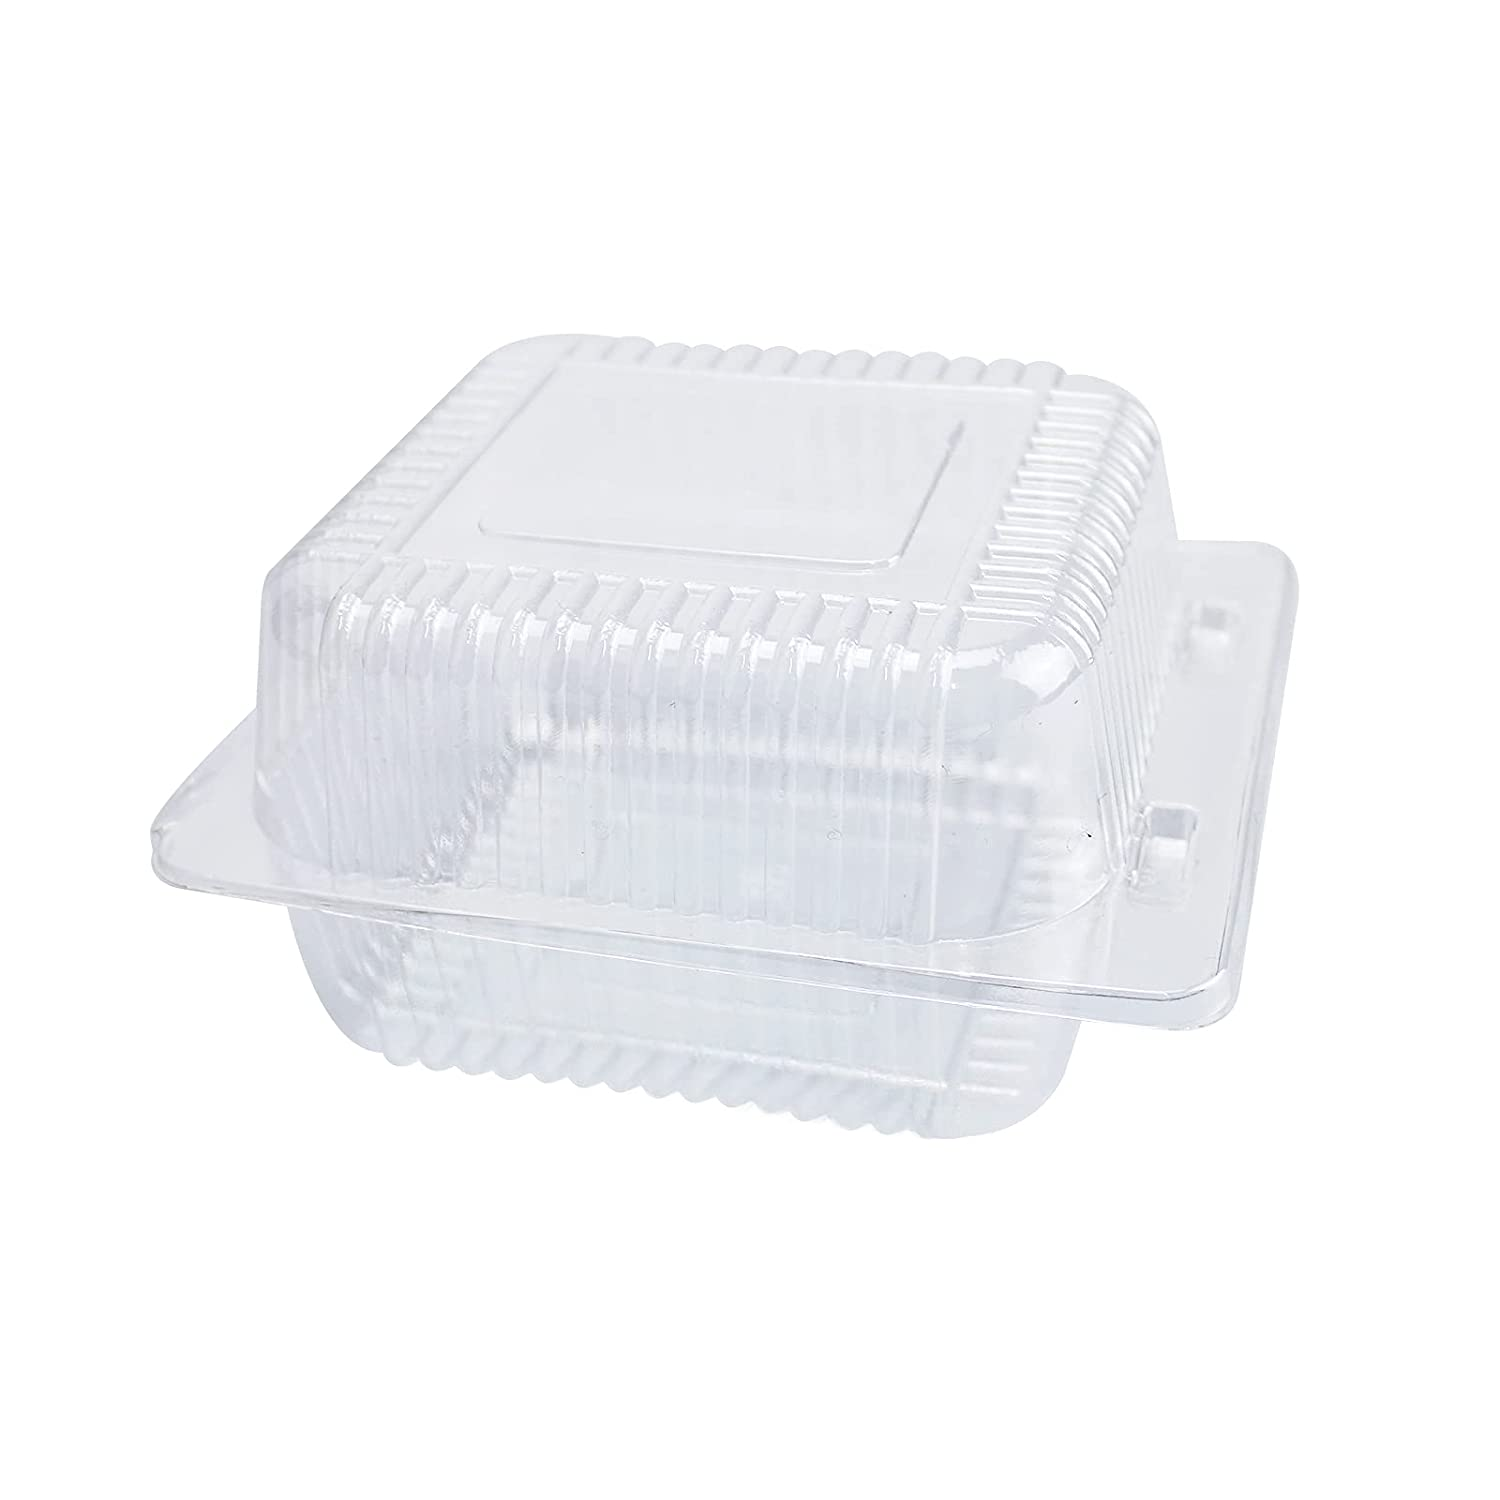 Clear Hinged Plastic Containers with Lids,50PC Square Plastic Hinged Food Container Individual Cake Slice Containers Disposable Plastic Clamshell Takeout Tray for Salads, Pasta, Sandwiches 5.3x4.7x2.8 Inch